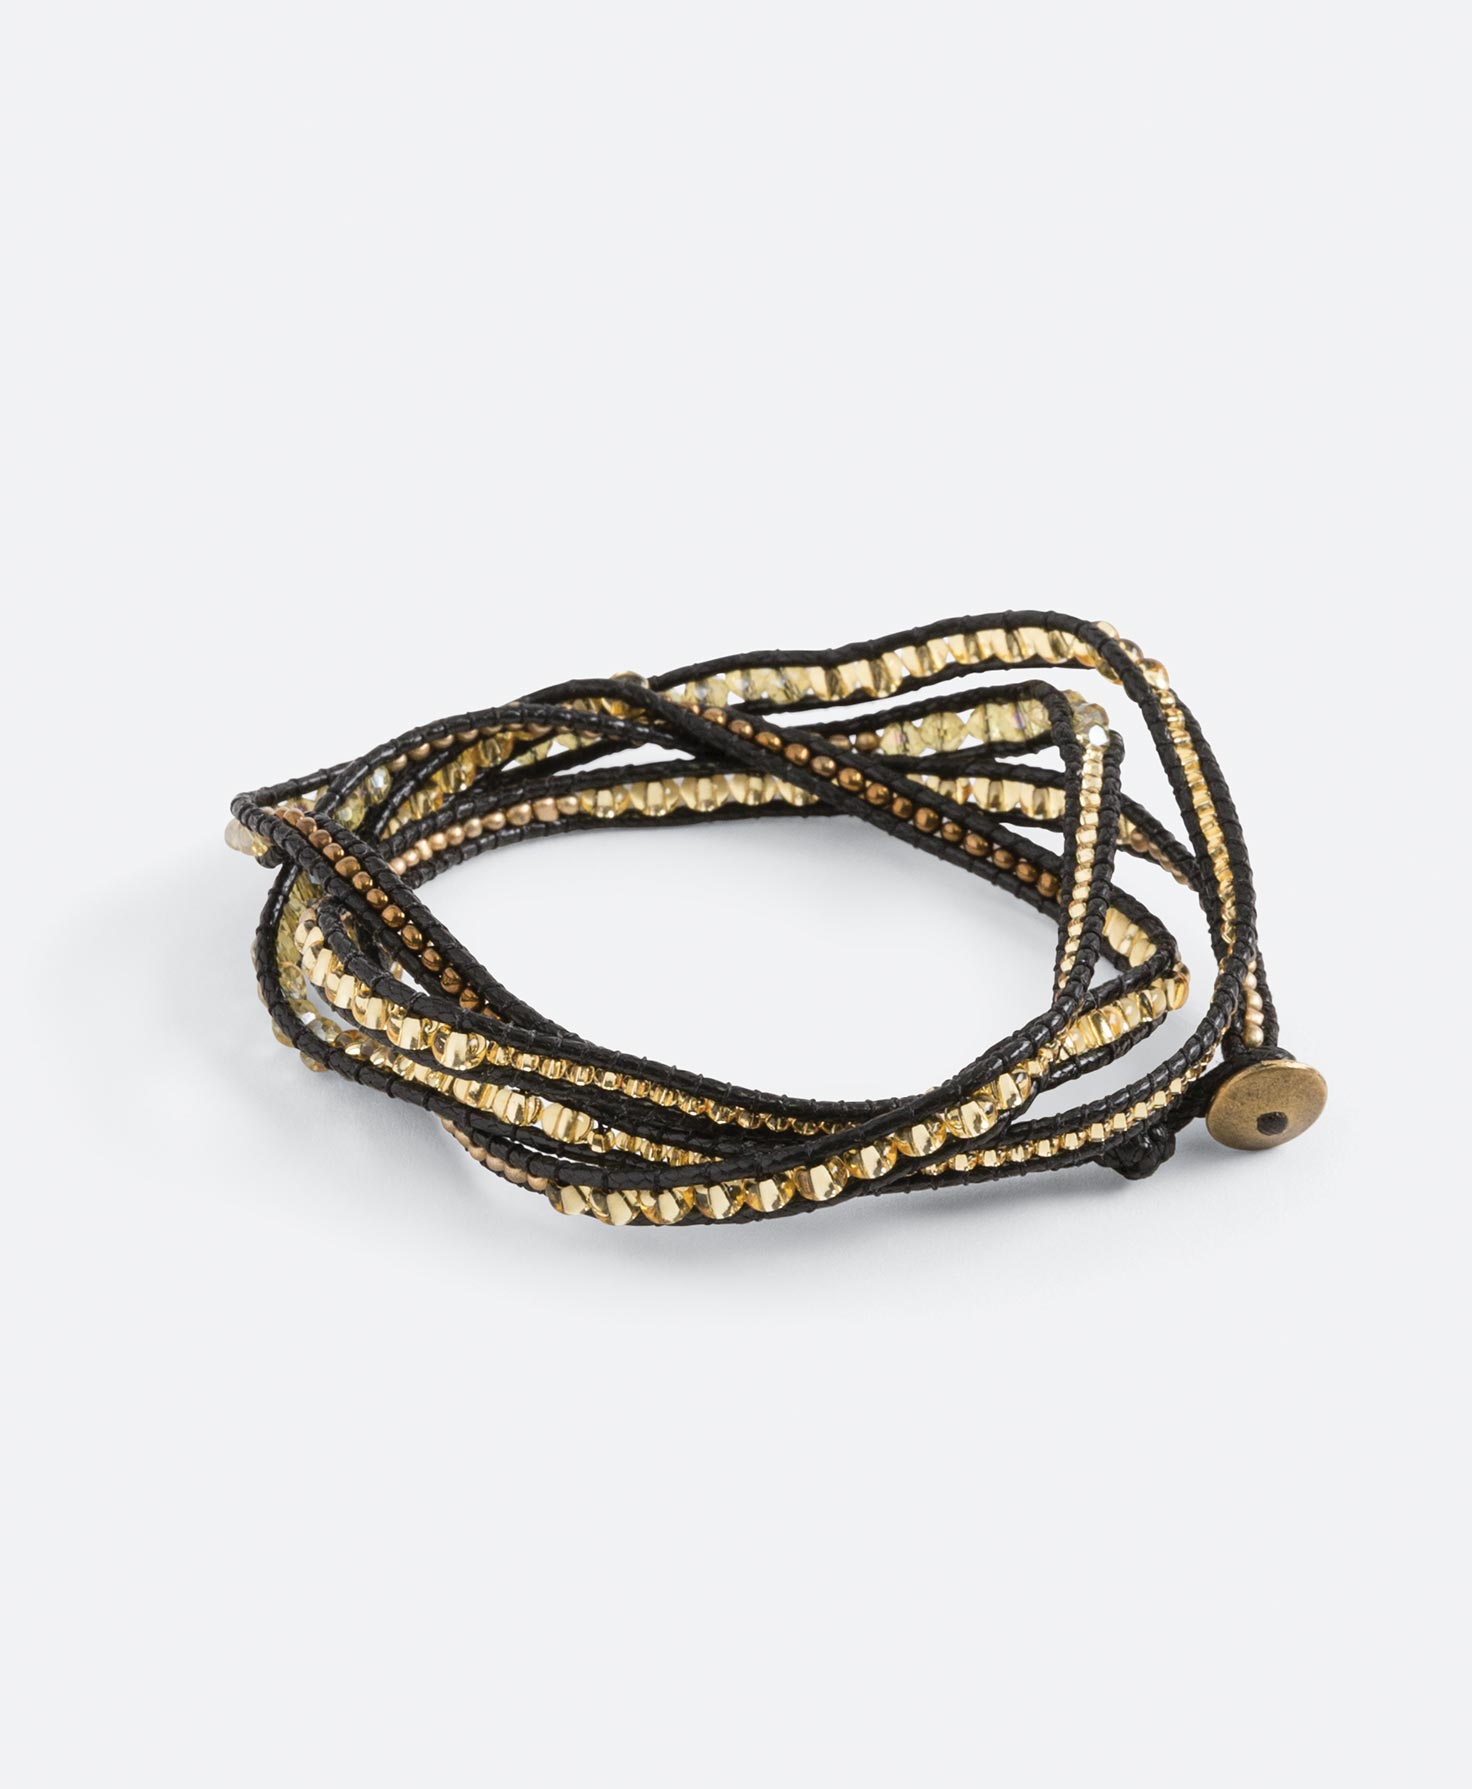 Wrap bracelet - Ethical, Sustainable Holiday Gift Guide - That Homebird Life Blog